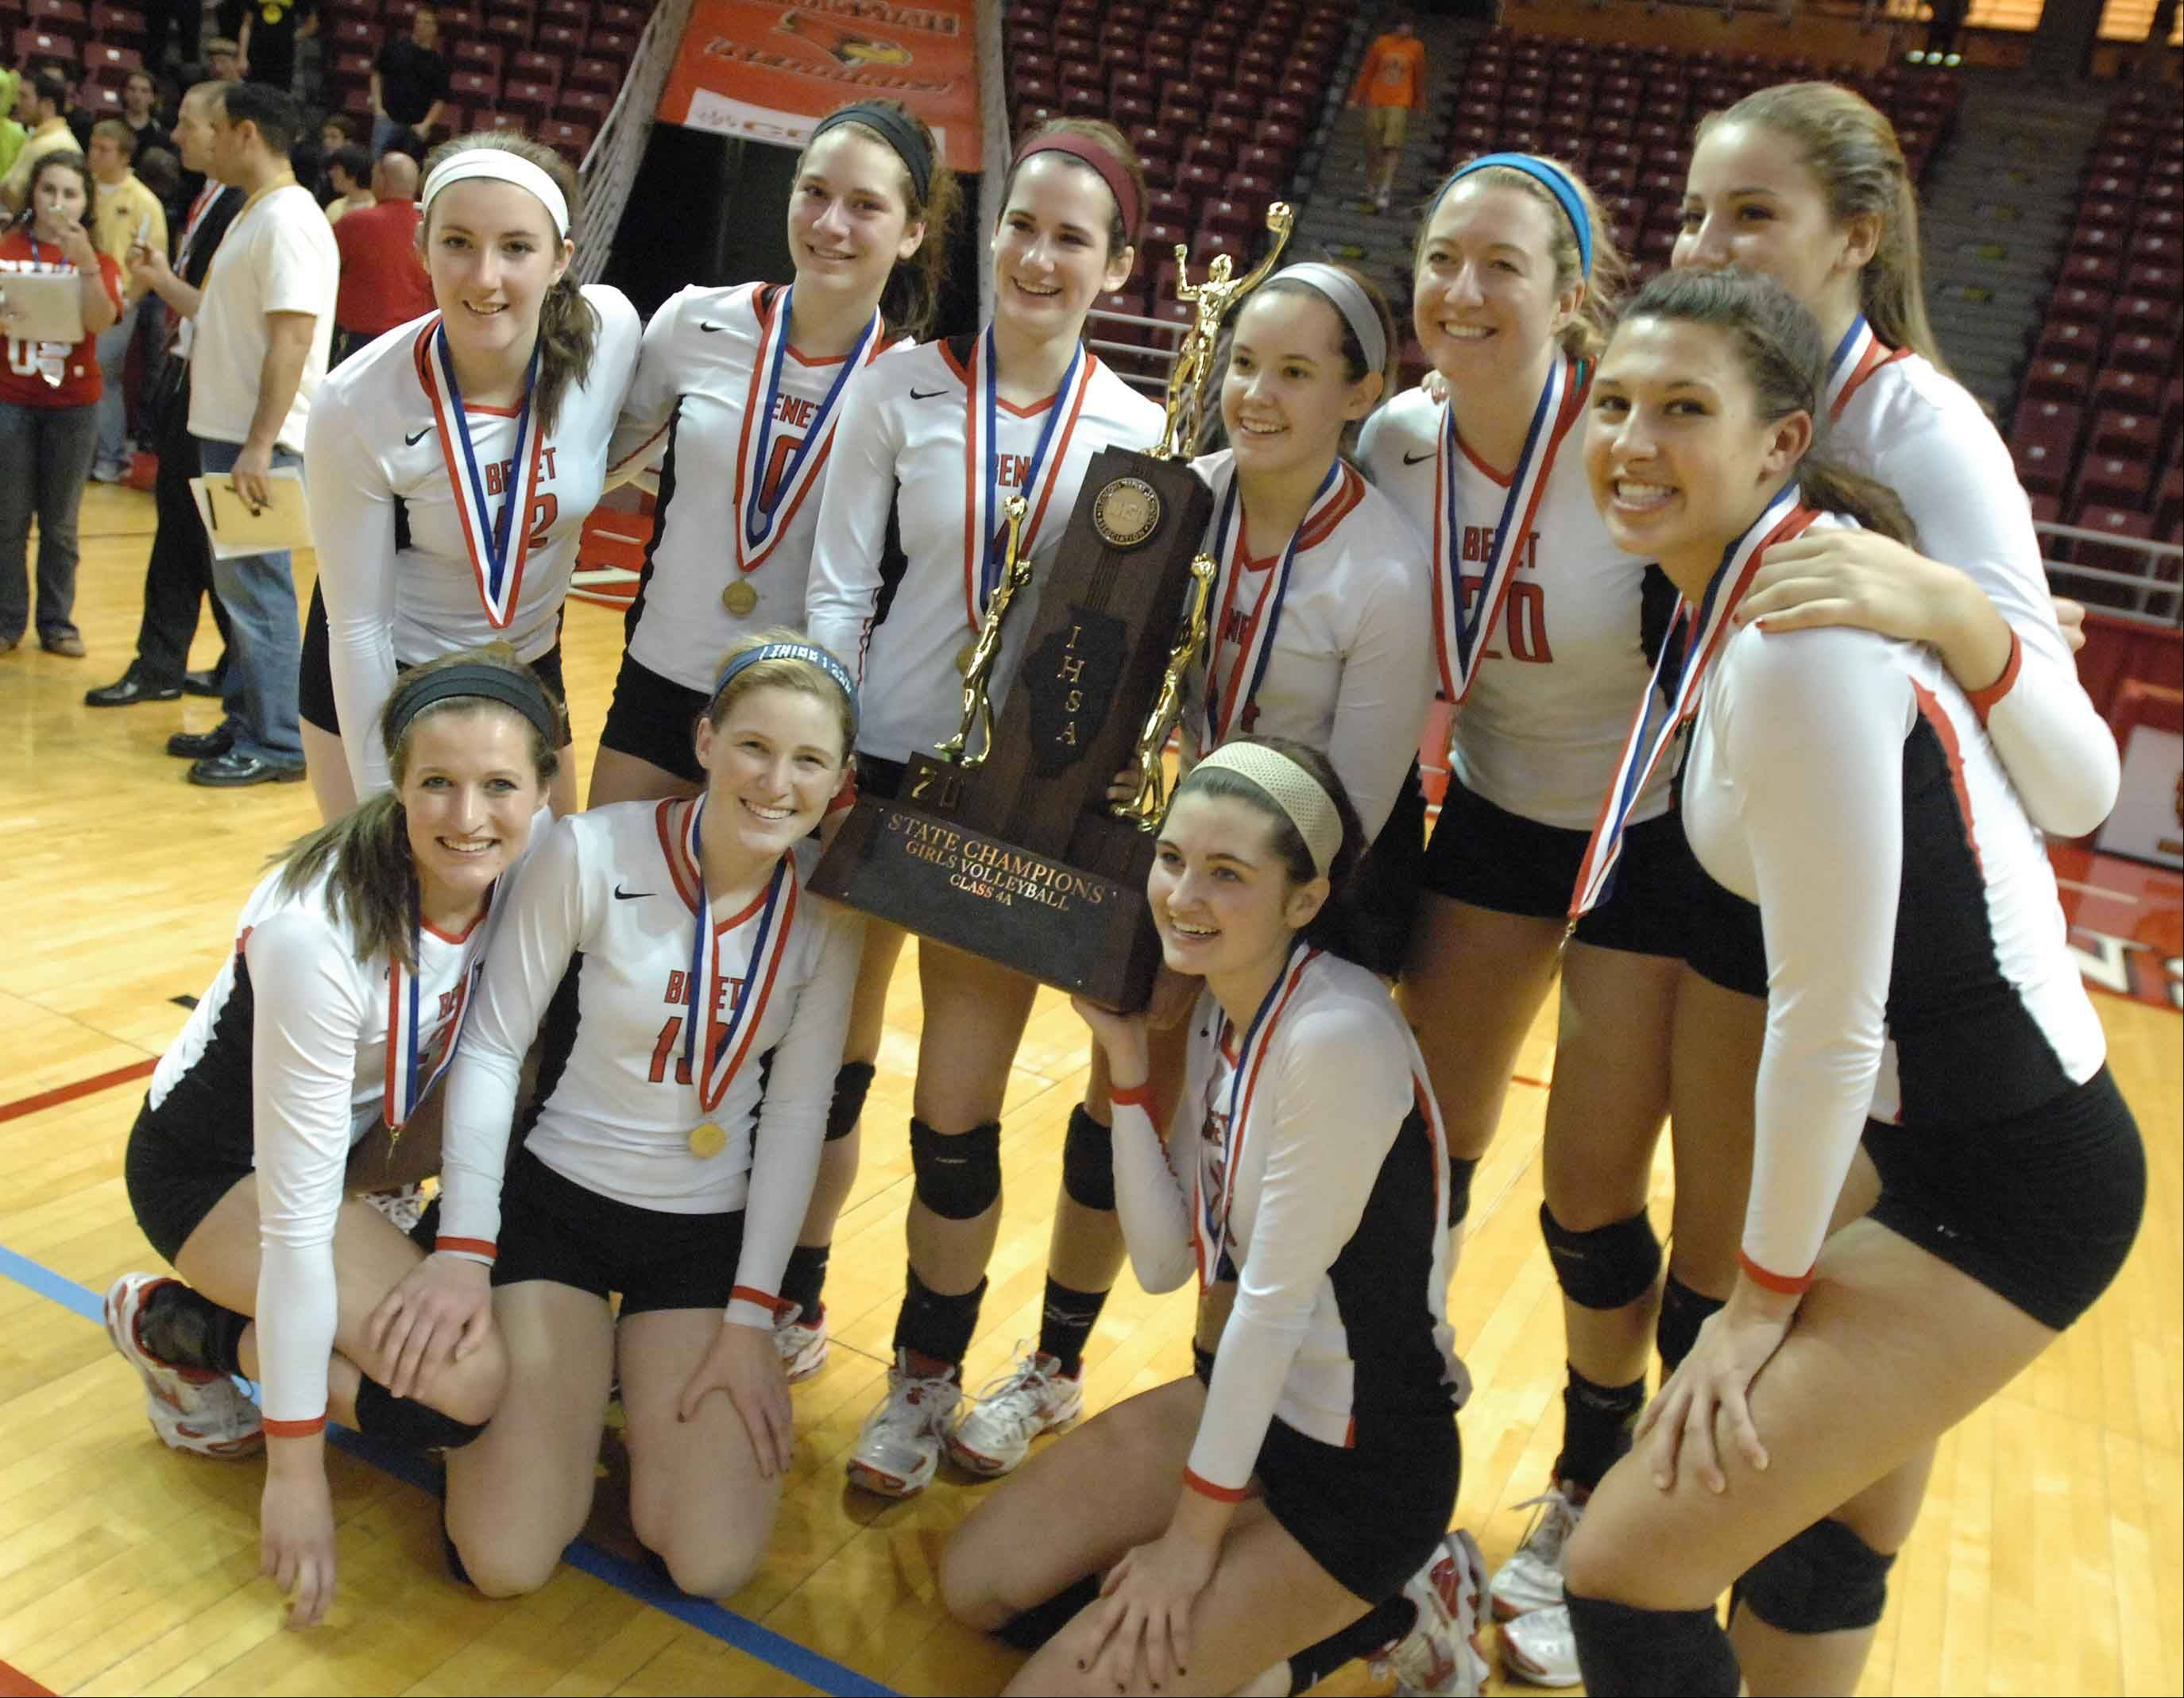 Benet girls volleyball team celebrates its state championship in November.